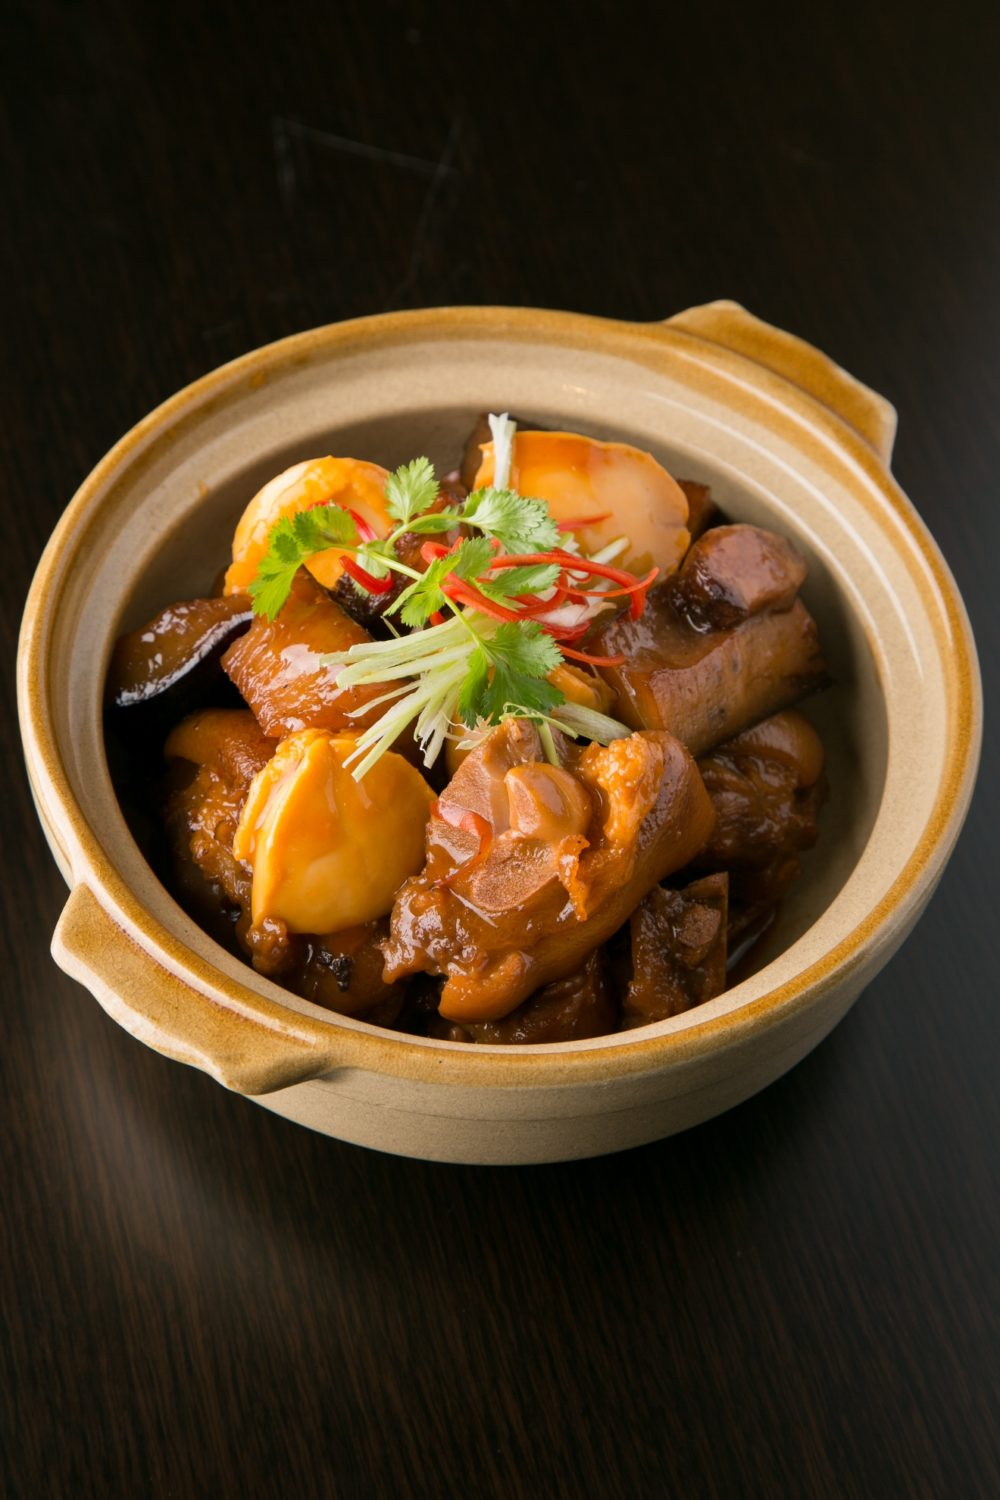 Slow cook Supreme Sea Cucumber with Abalone, pork knuckle in a Clay pot (2)